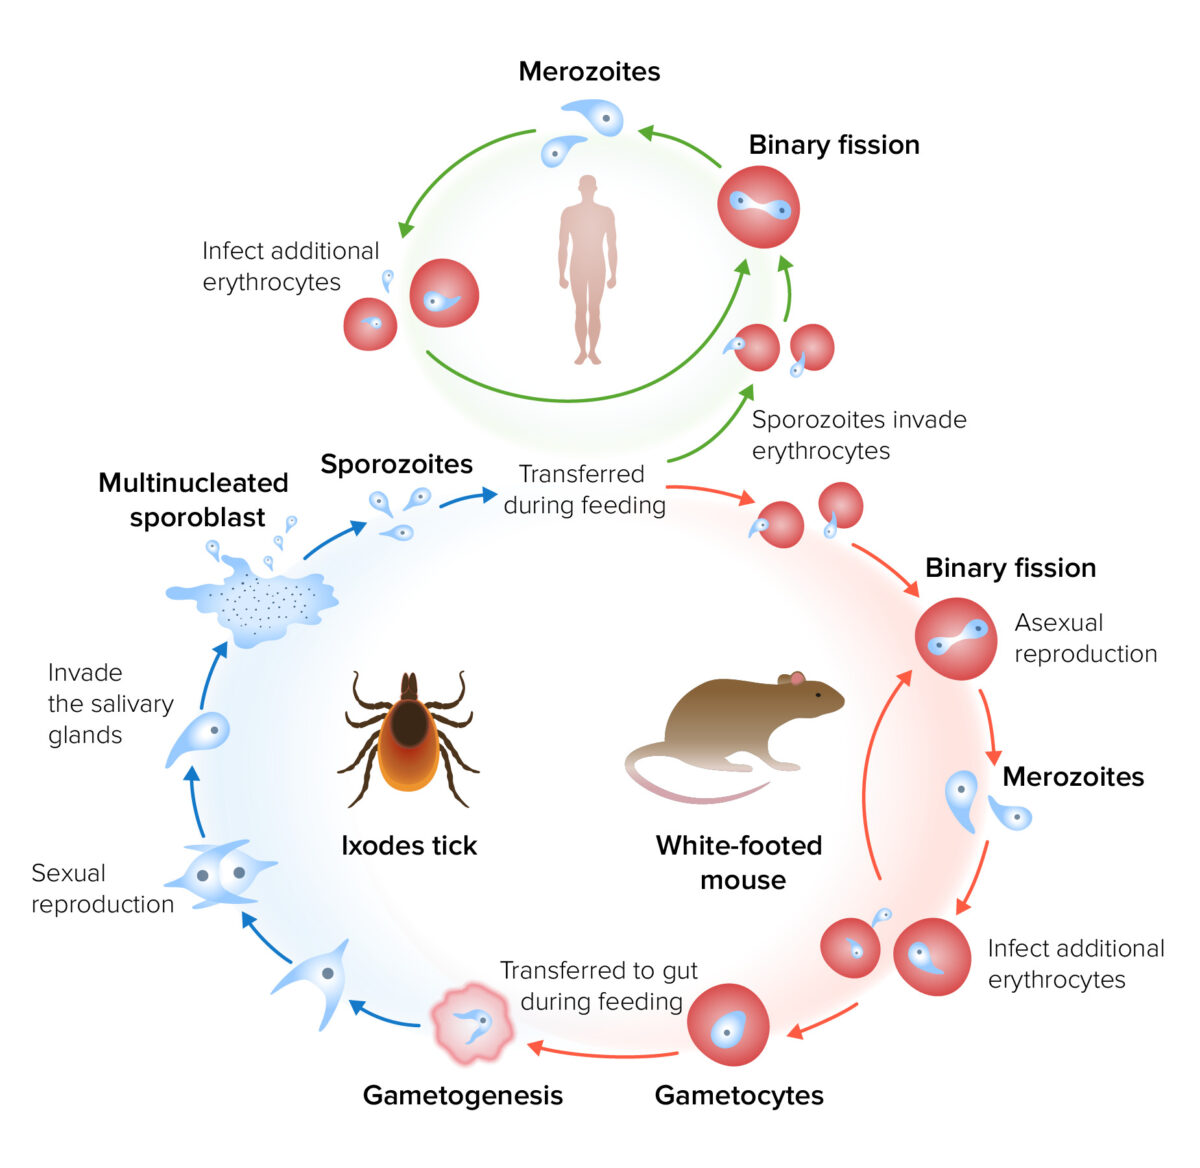 The life cycle and transmission of Babesia